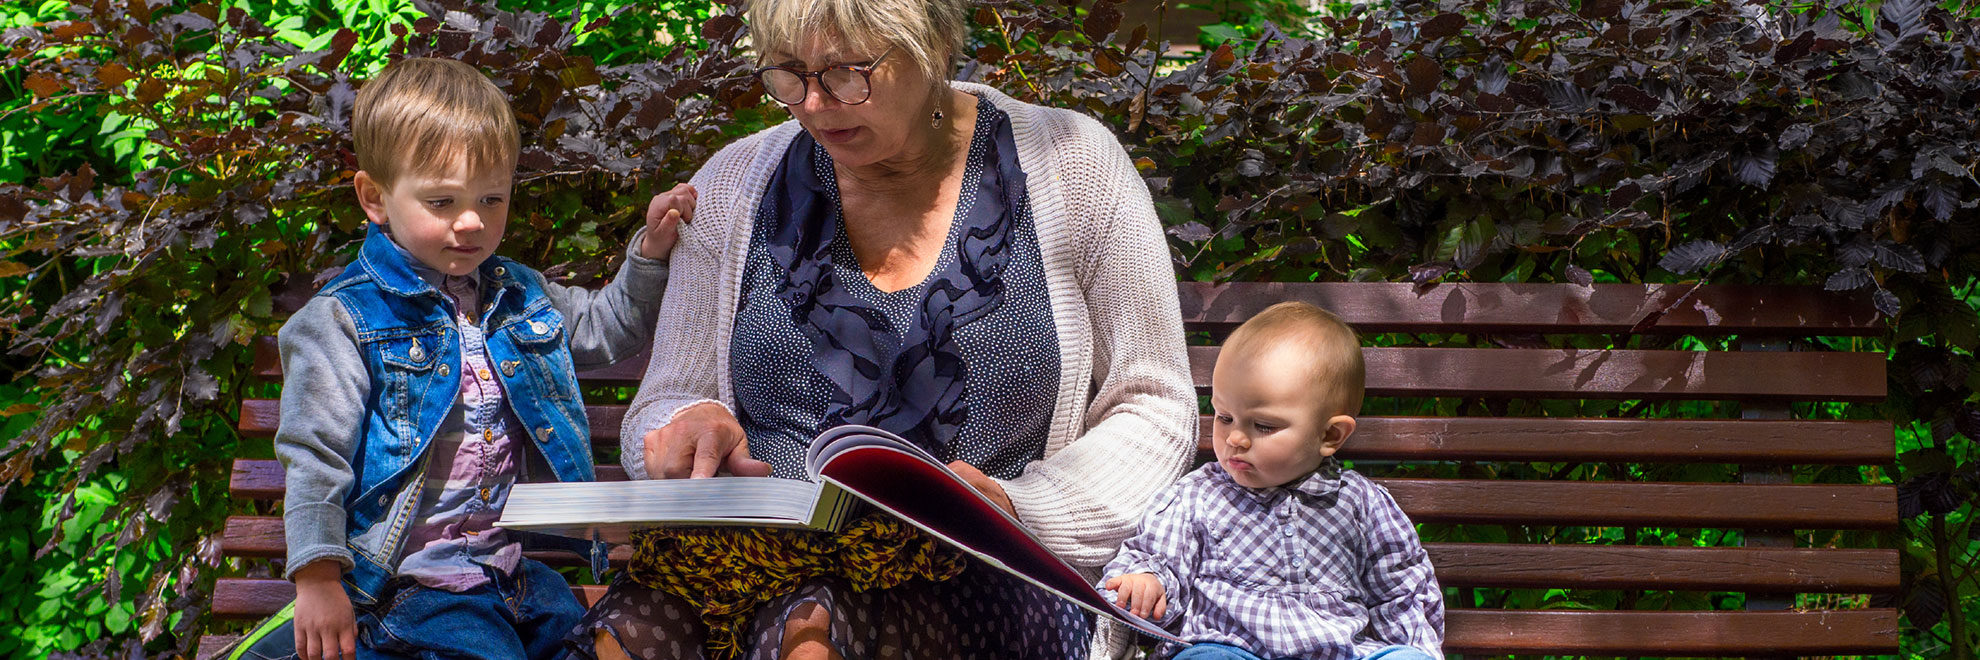 grandmother reading book